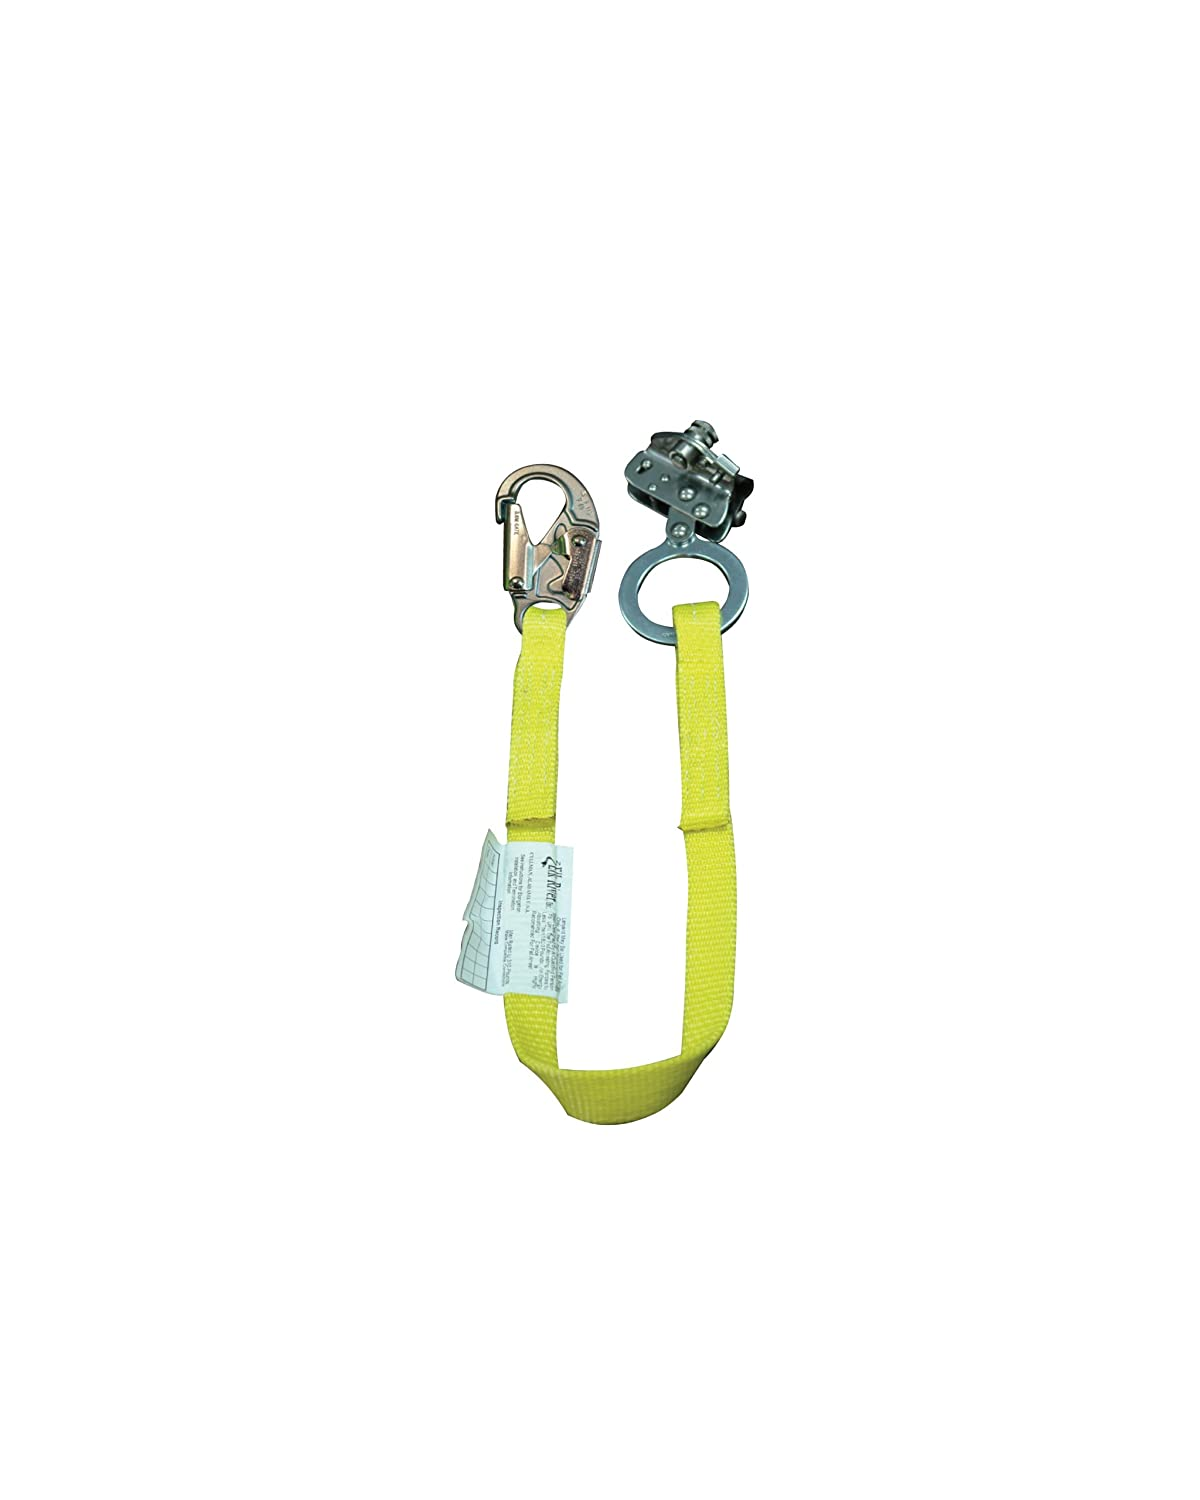 Elk River 62452 WindEagle Polyester/Nylon 4 D-Ring LE Harness with Quick Connect Buckles, Medium by Elk River B005FMPOFO